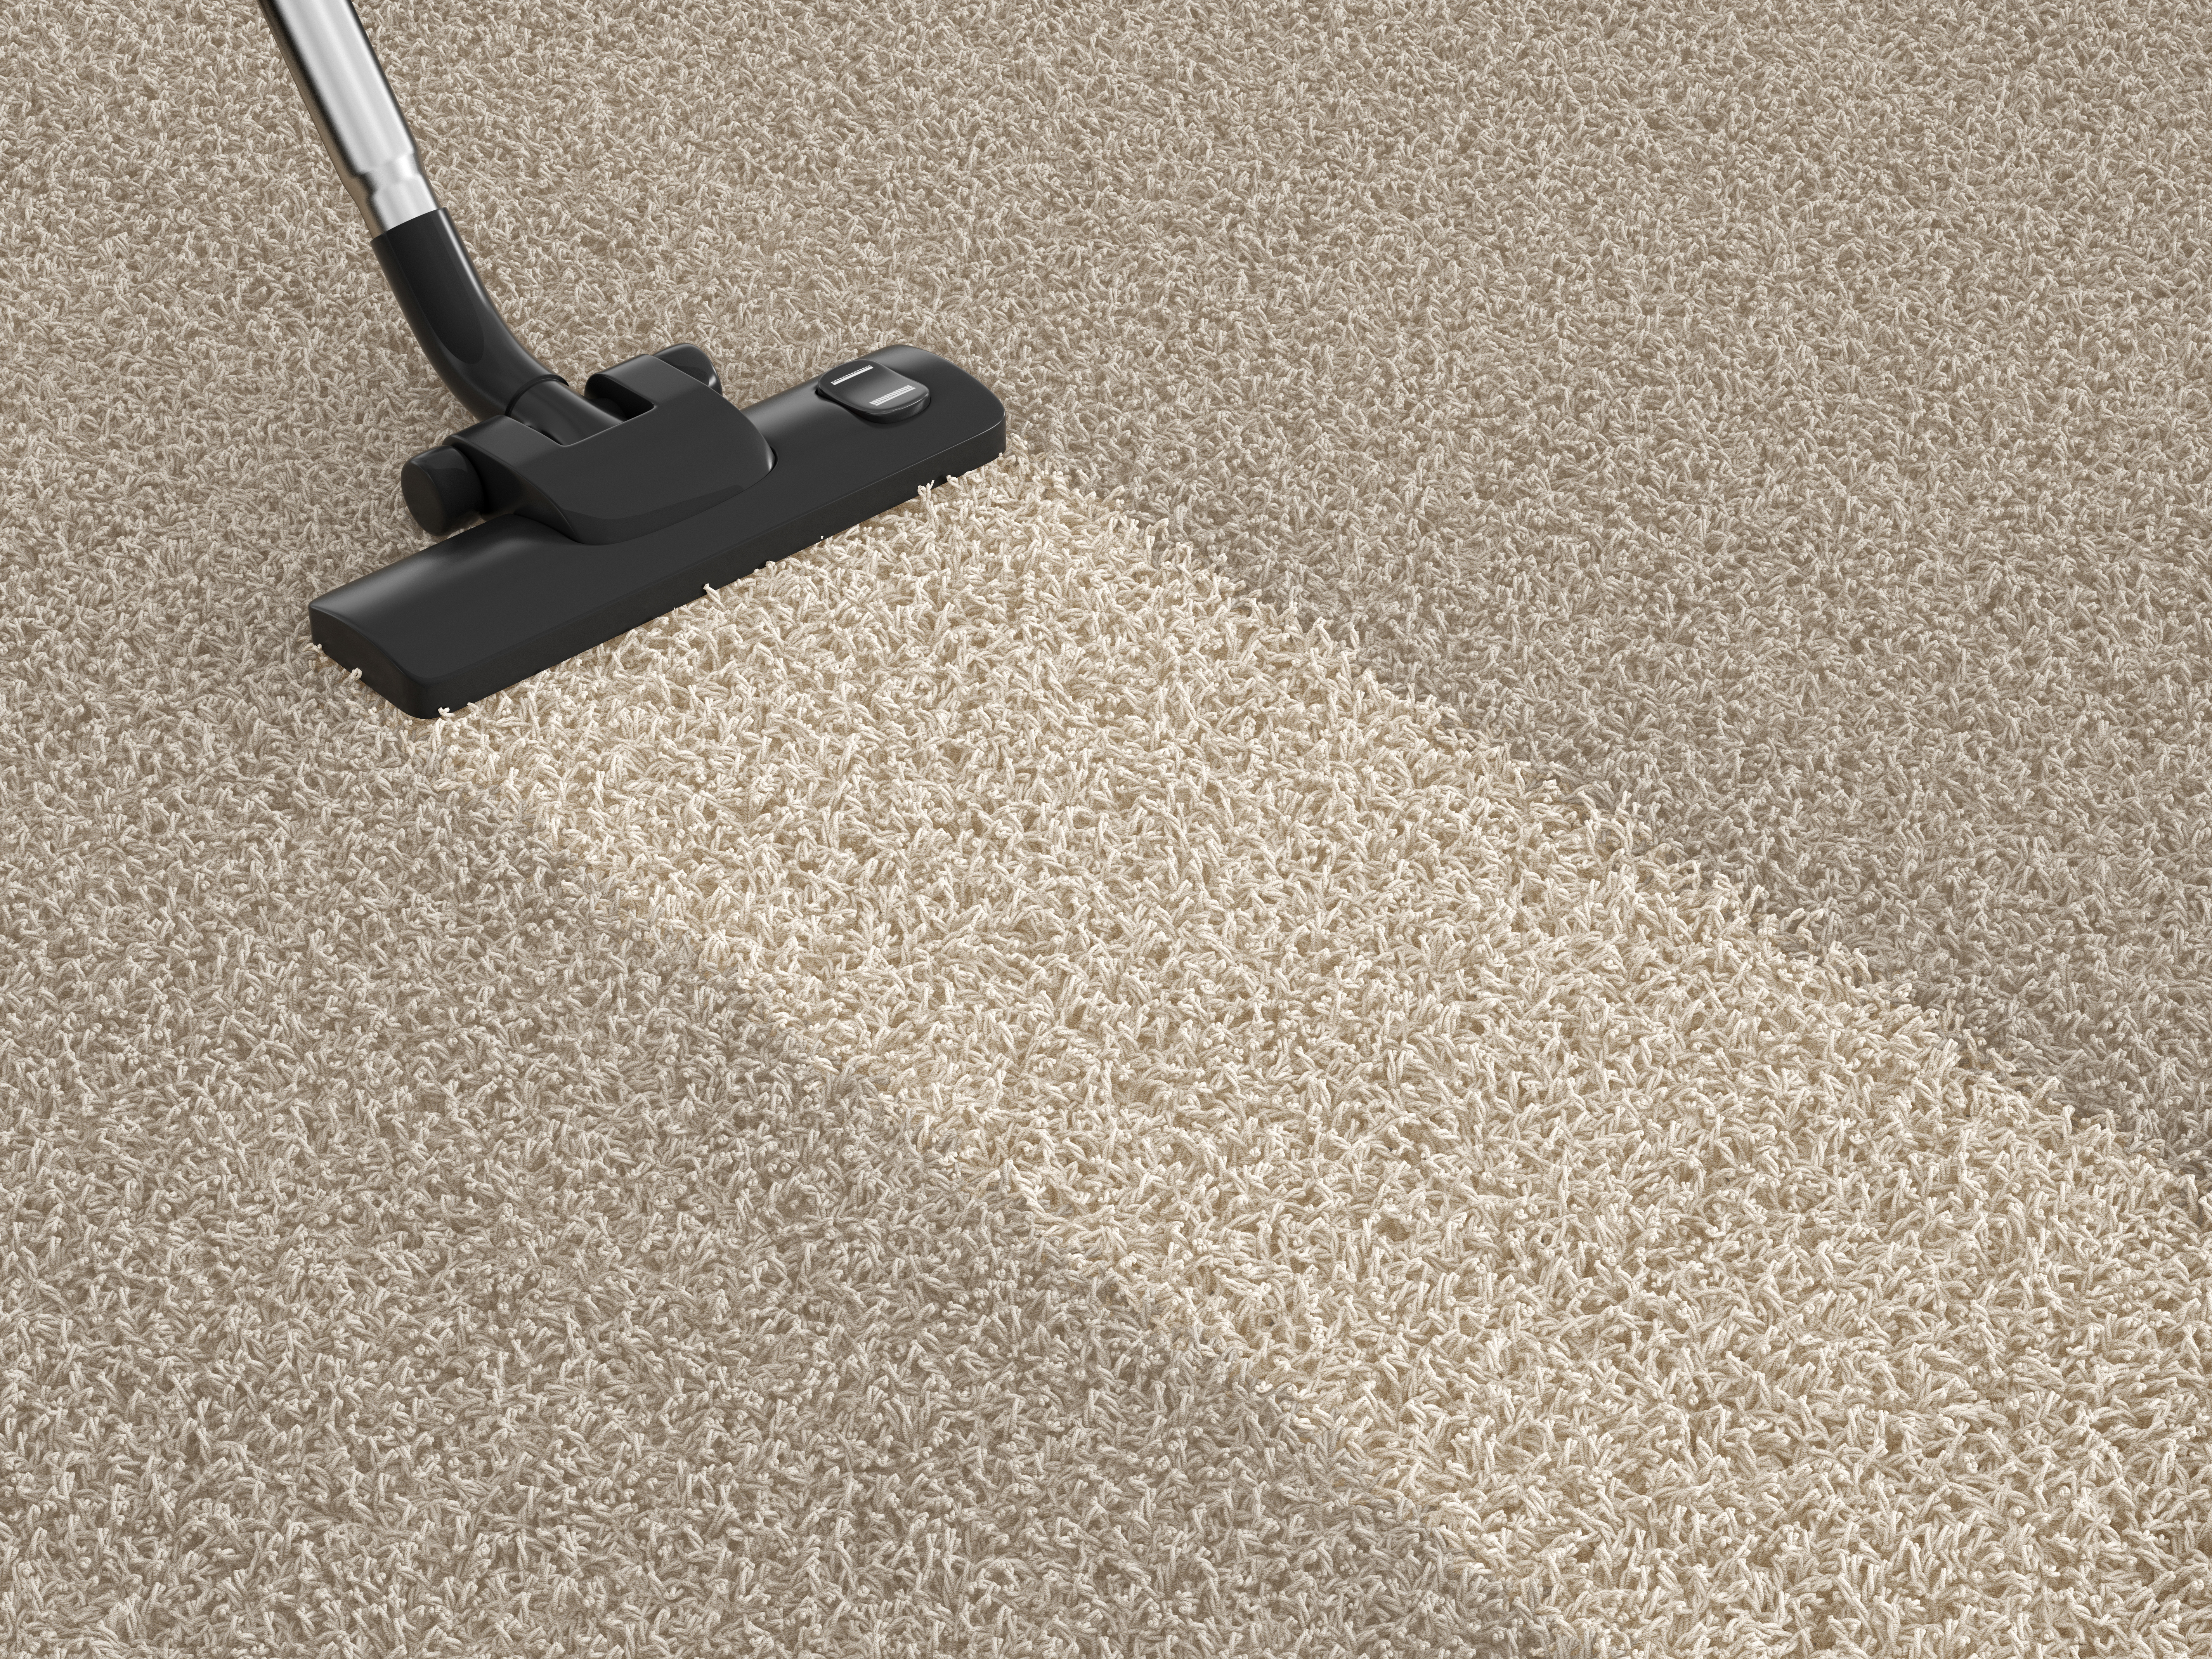 Vacuum cleaner hoover on dirty carpet house cleaning concept vacuuming carpet twin cities baanklon Images